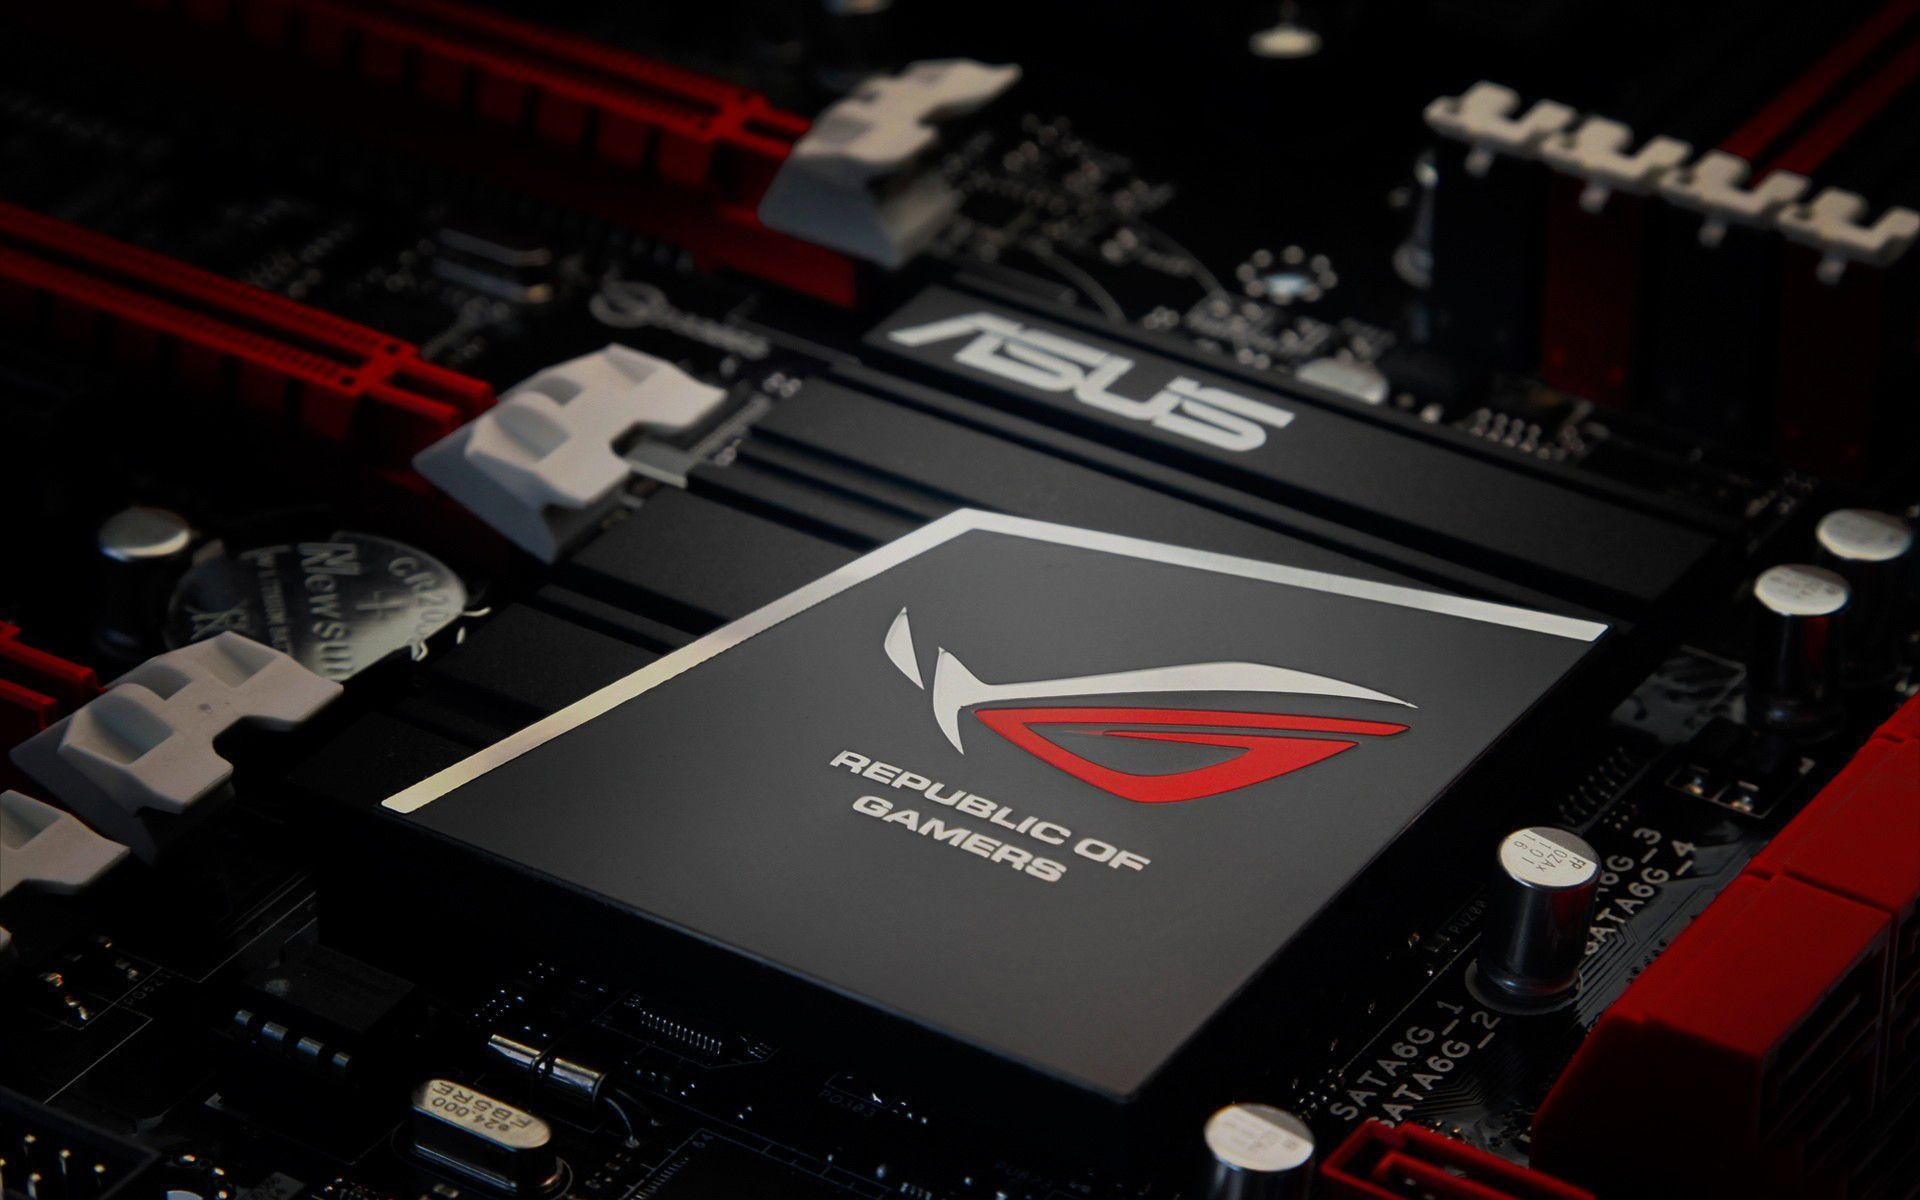 33 units of Asus Wallpaper